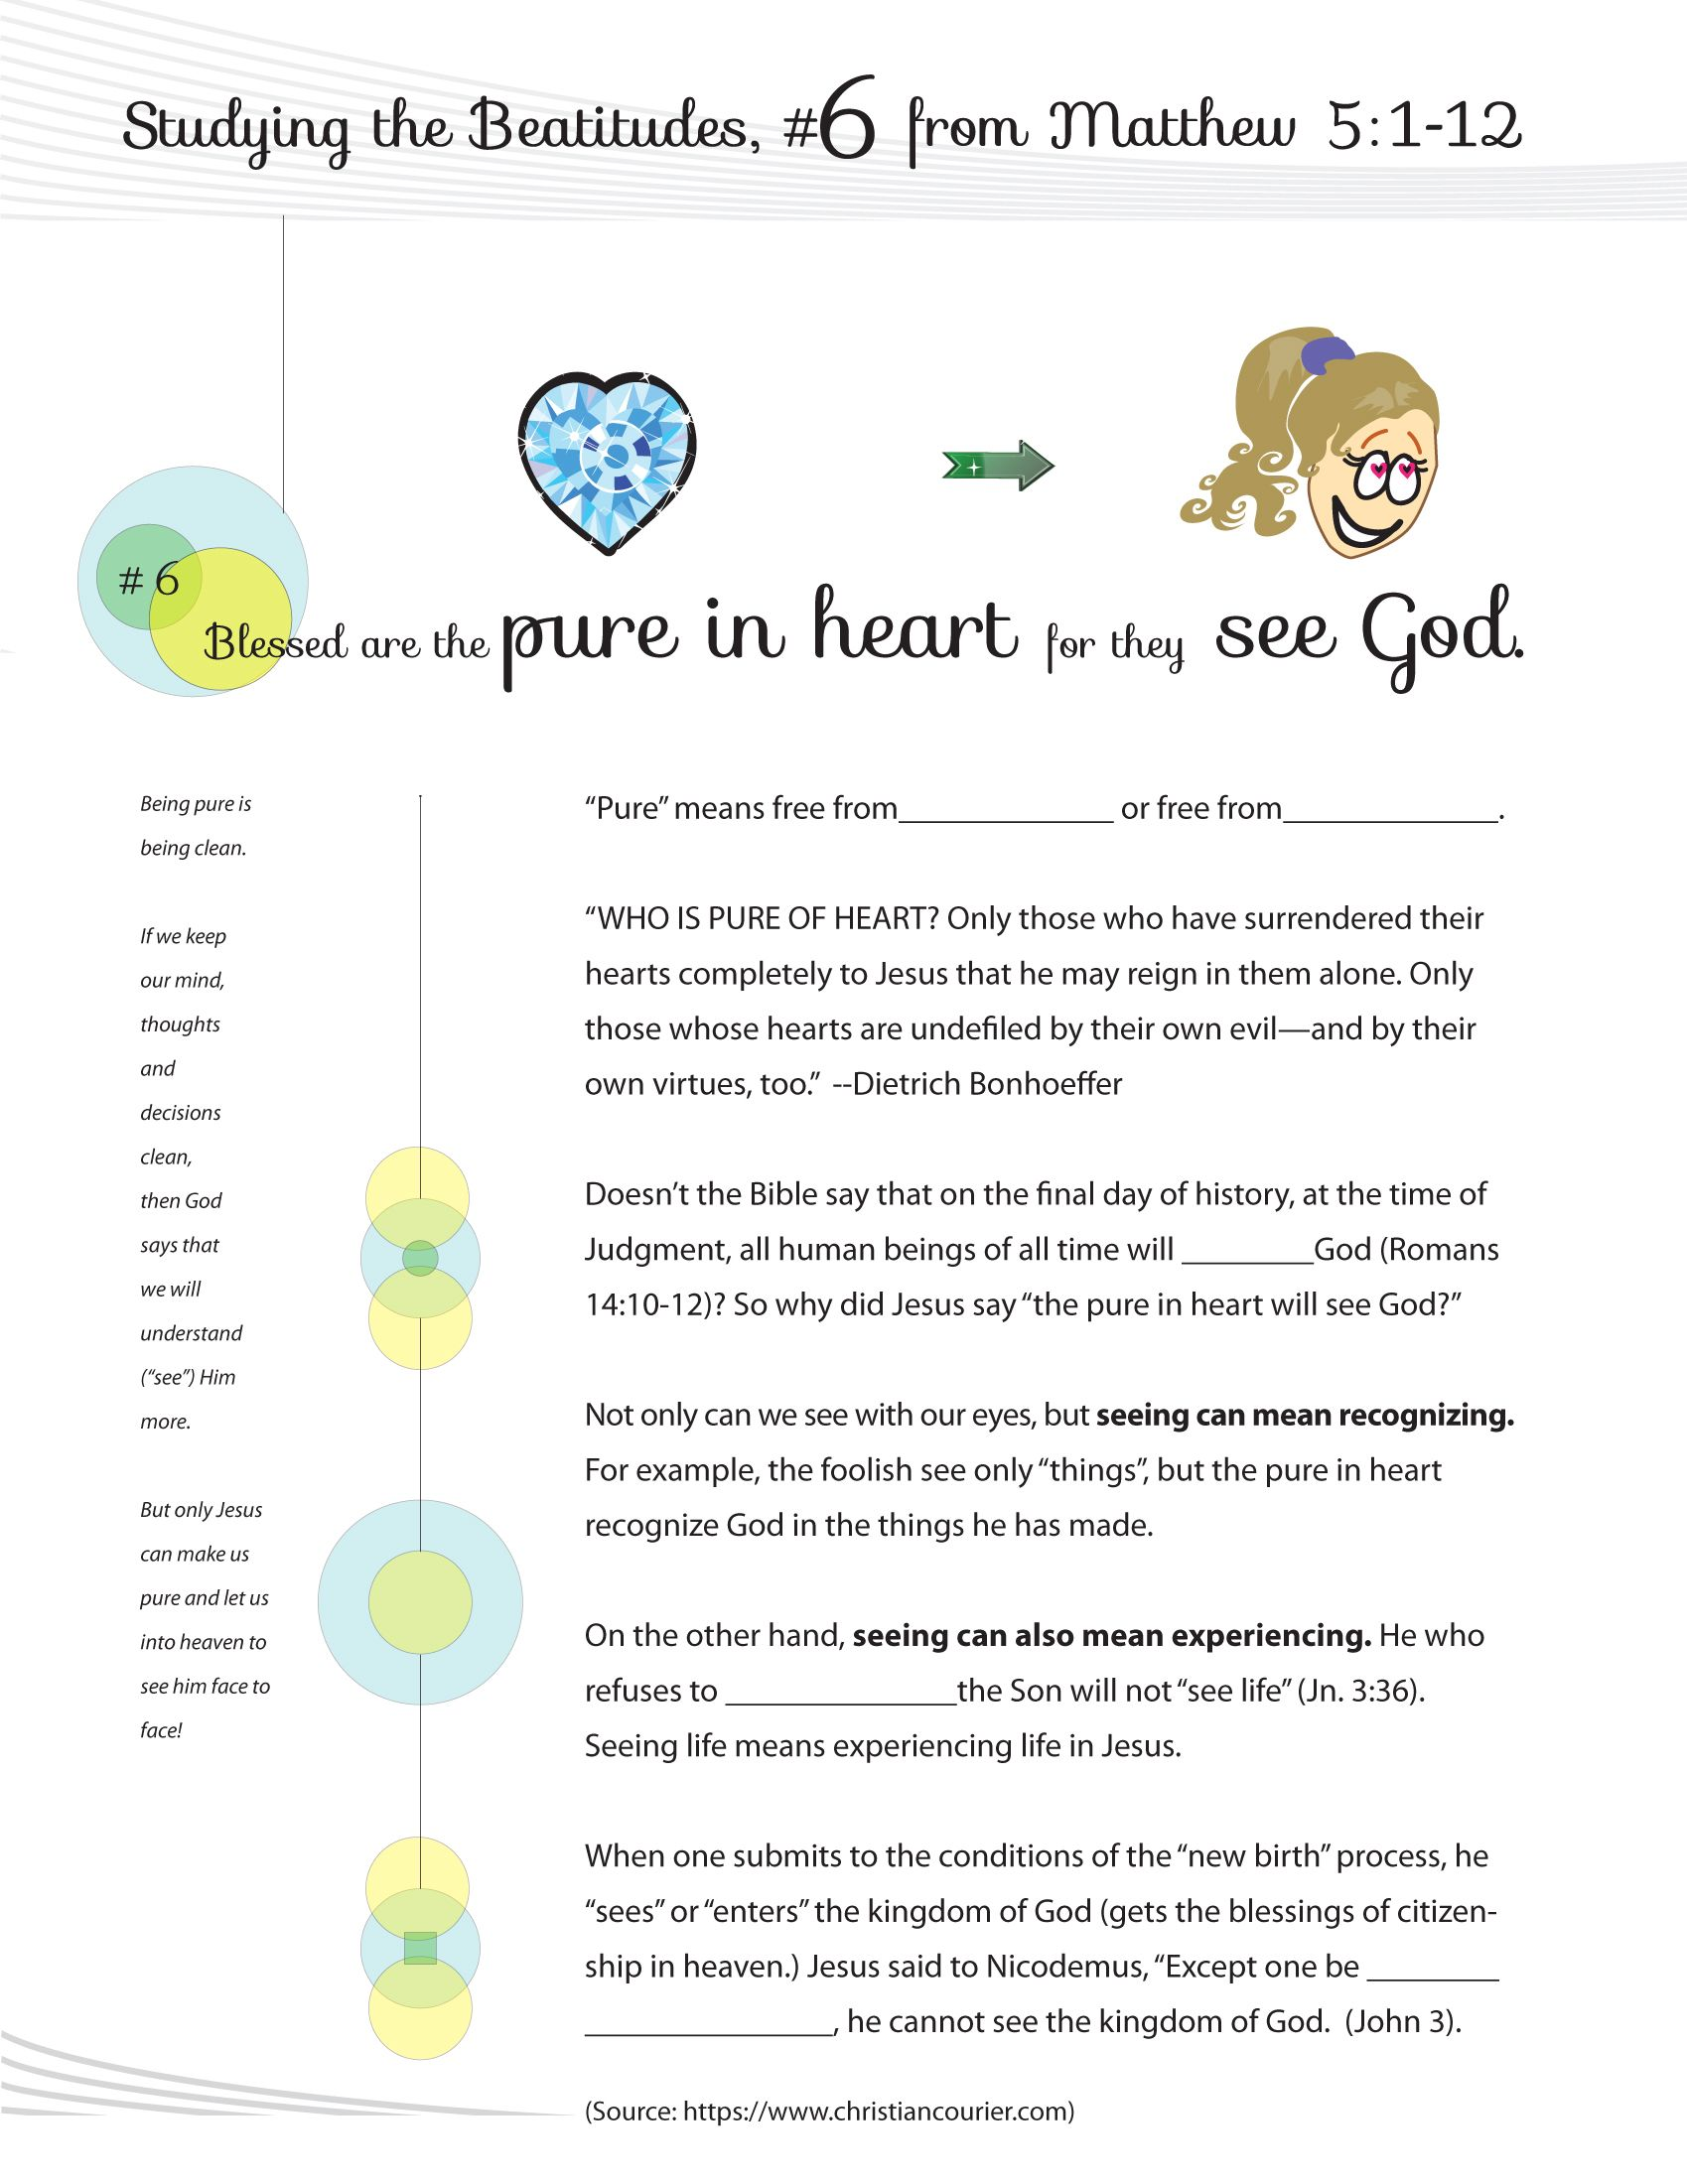 Worksheets Beatitudes Worksheet worksheet to teach the 6th beatitude of christian life from jesus teaching his famous sermon